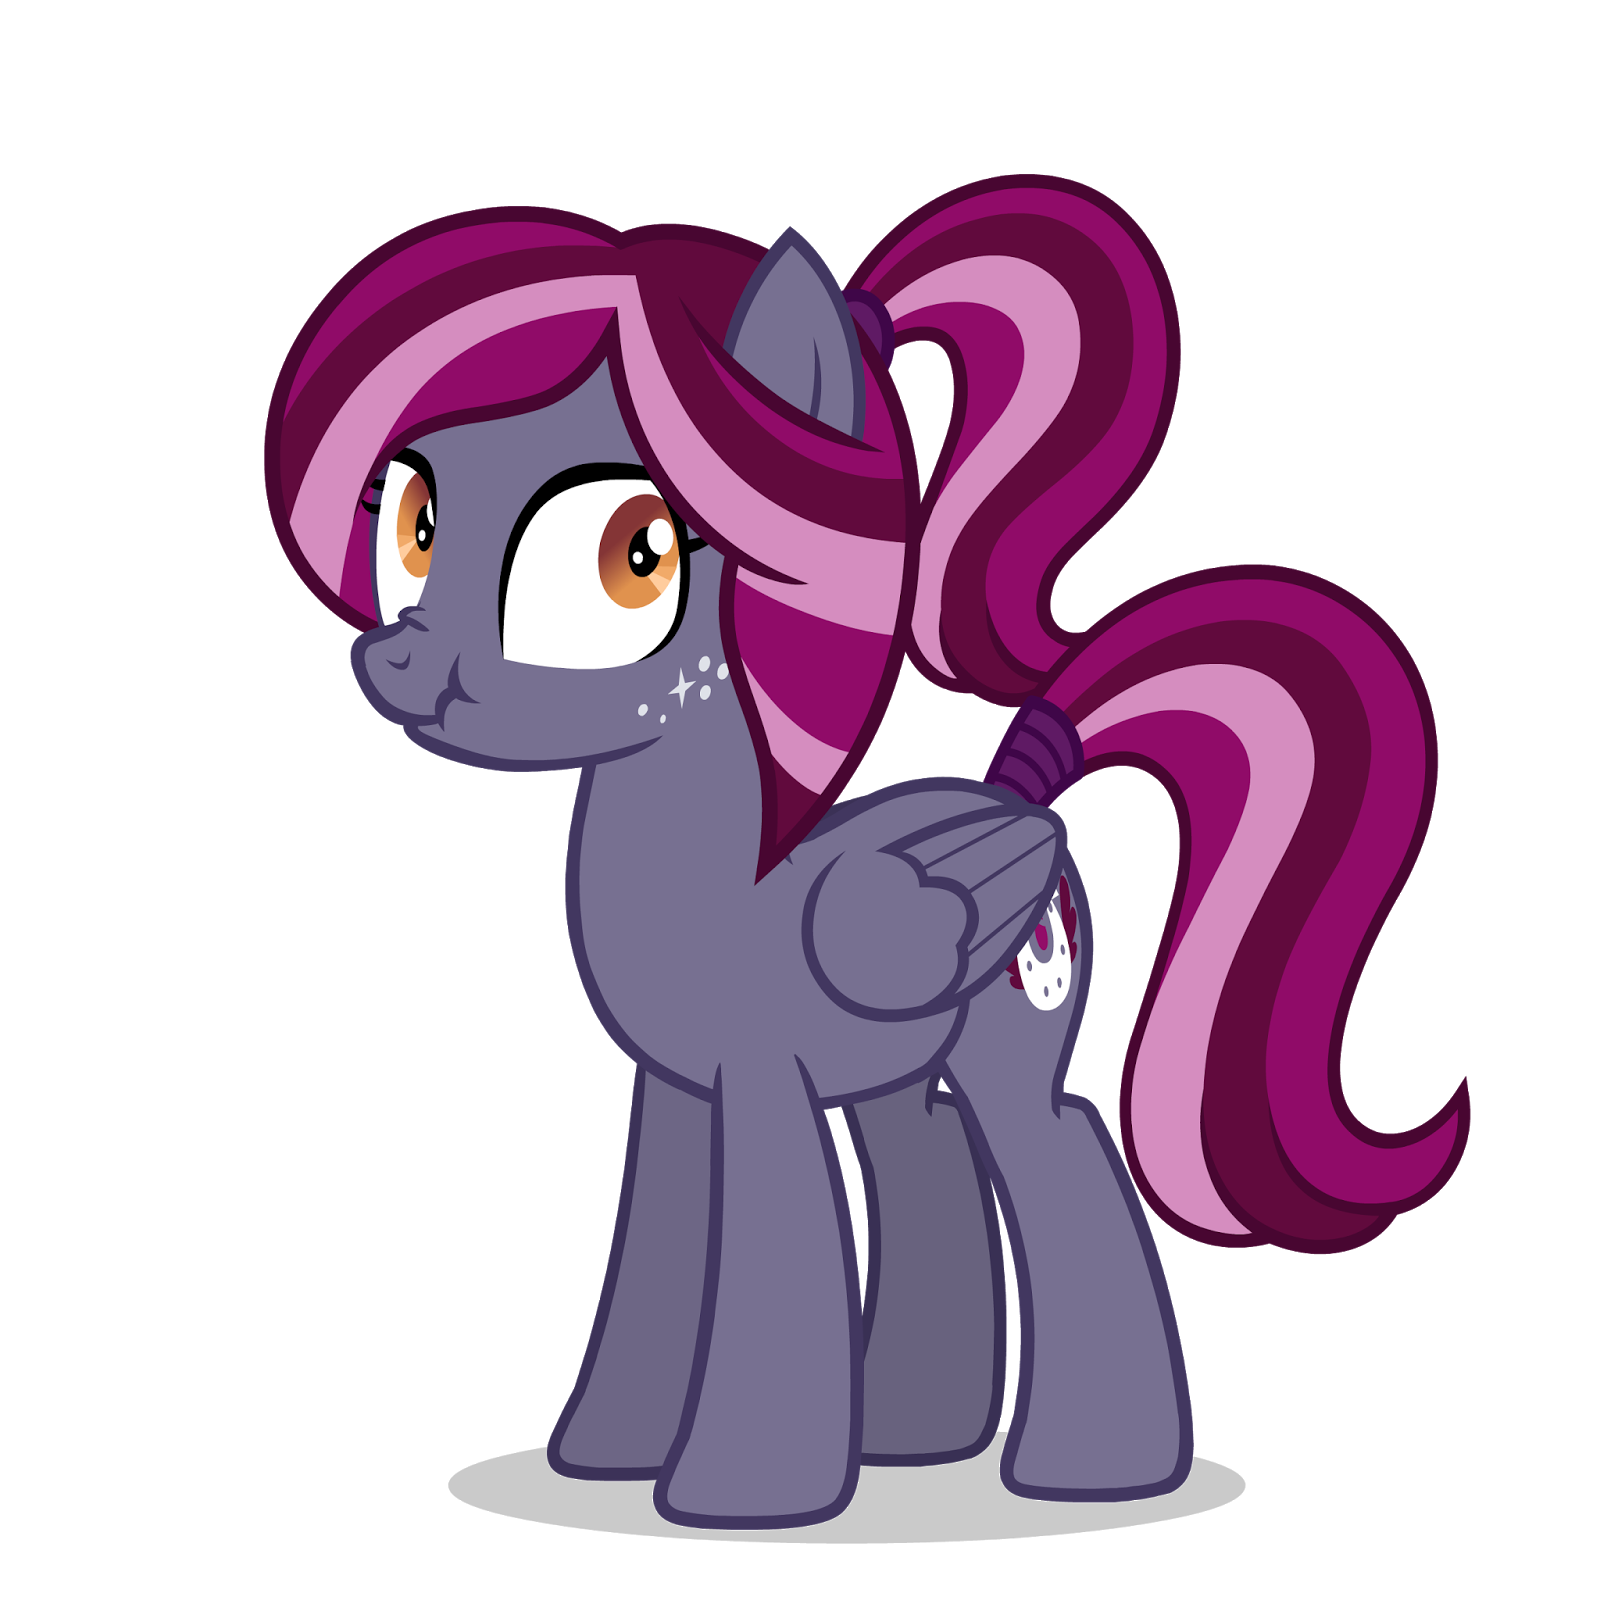 equestria daily mlp stuff show off your oc pony or one you like mlp stuff show off your oc pony